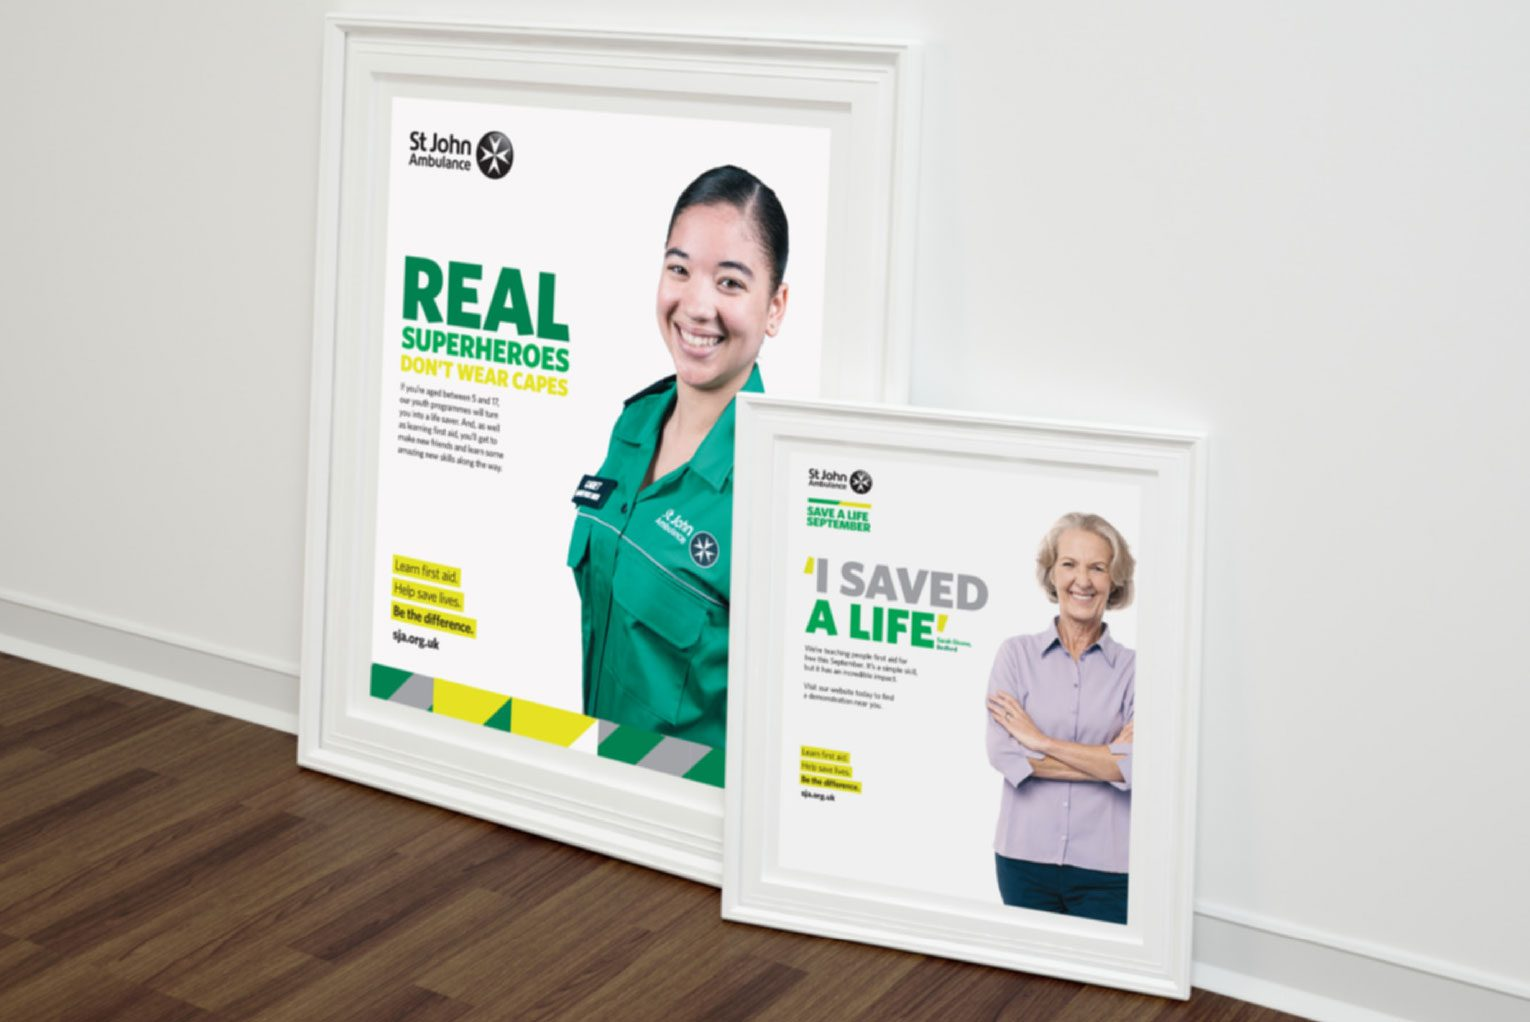 Branded posters featuring St John Ambulance volunteers.